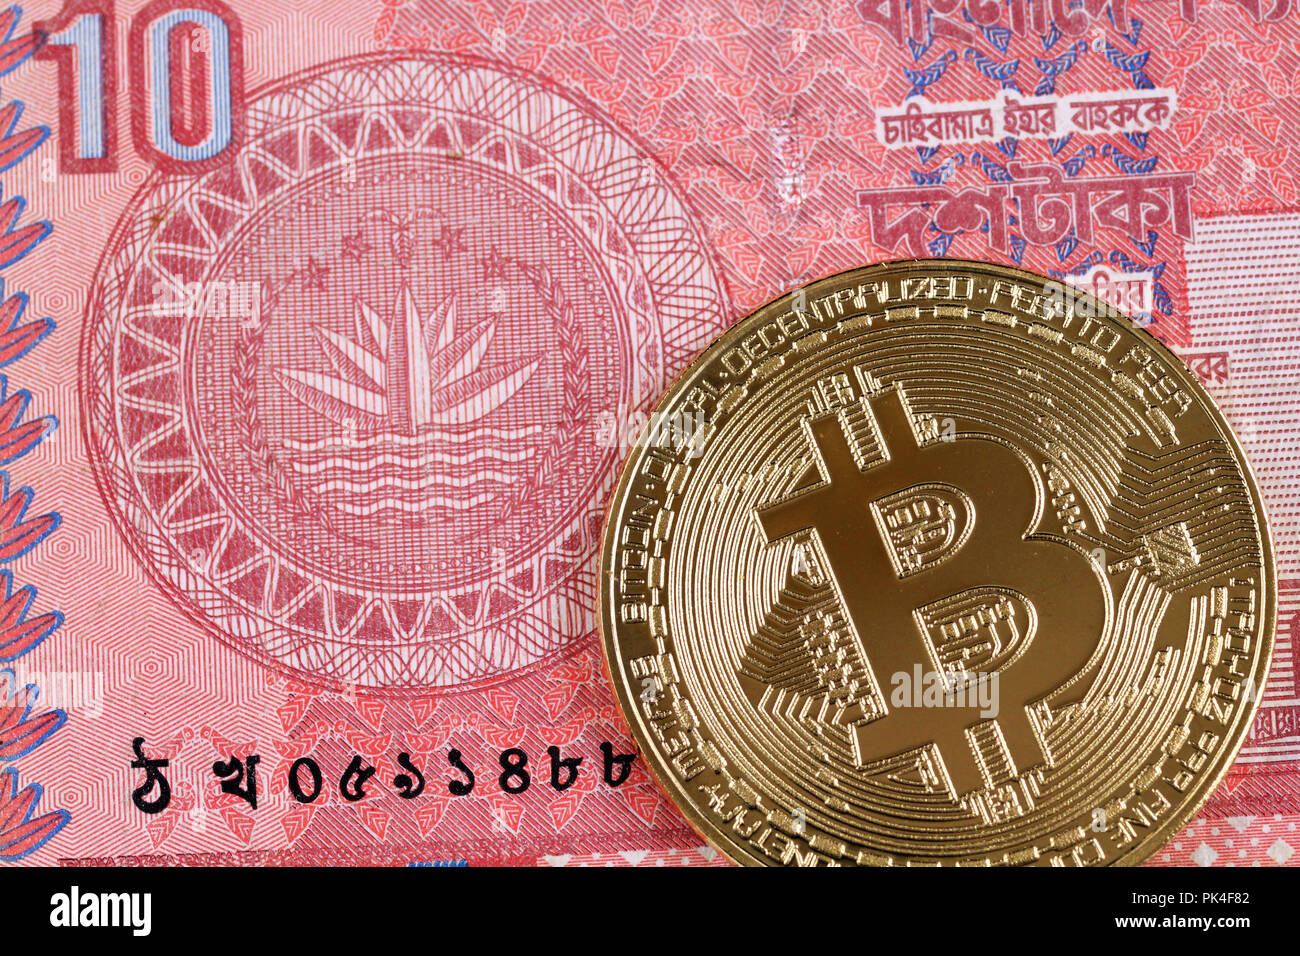 Close up image of a red, ten taka Bangladeshi note with a golden bitcoin - Stock Image